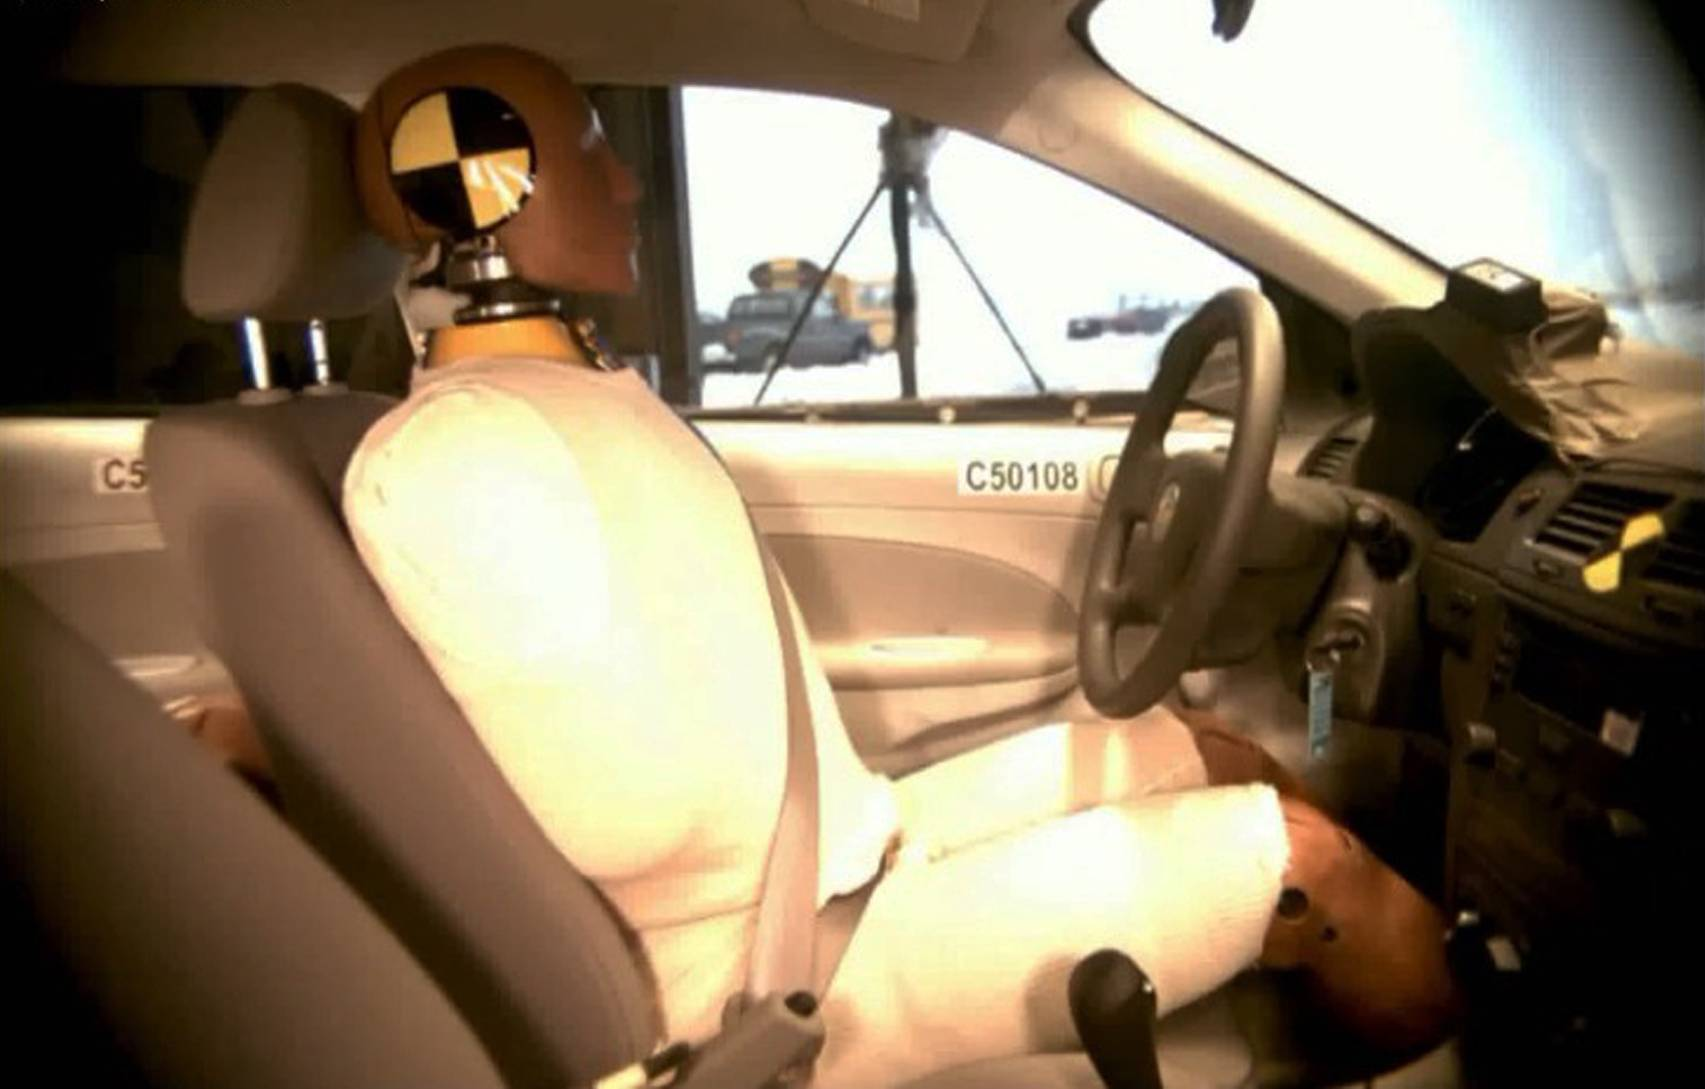 This undated image taken from video shows the National Highway Traffic Safety Administration (NHTSA) crash test of a  2005 General Motors Cobalt.